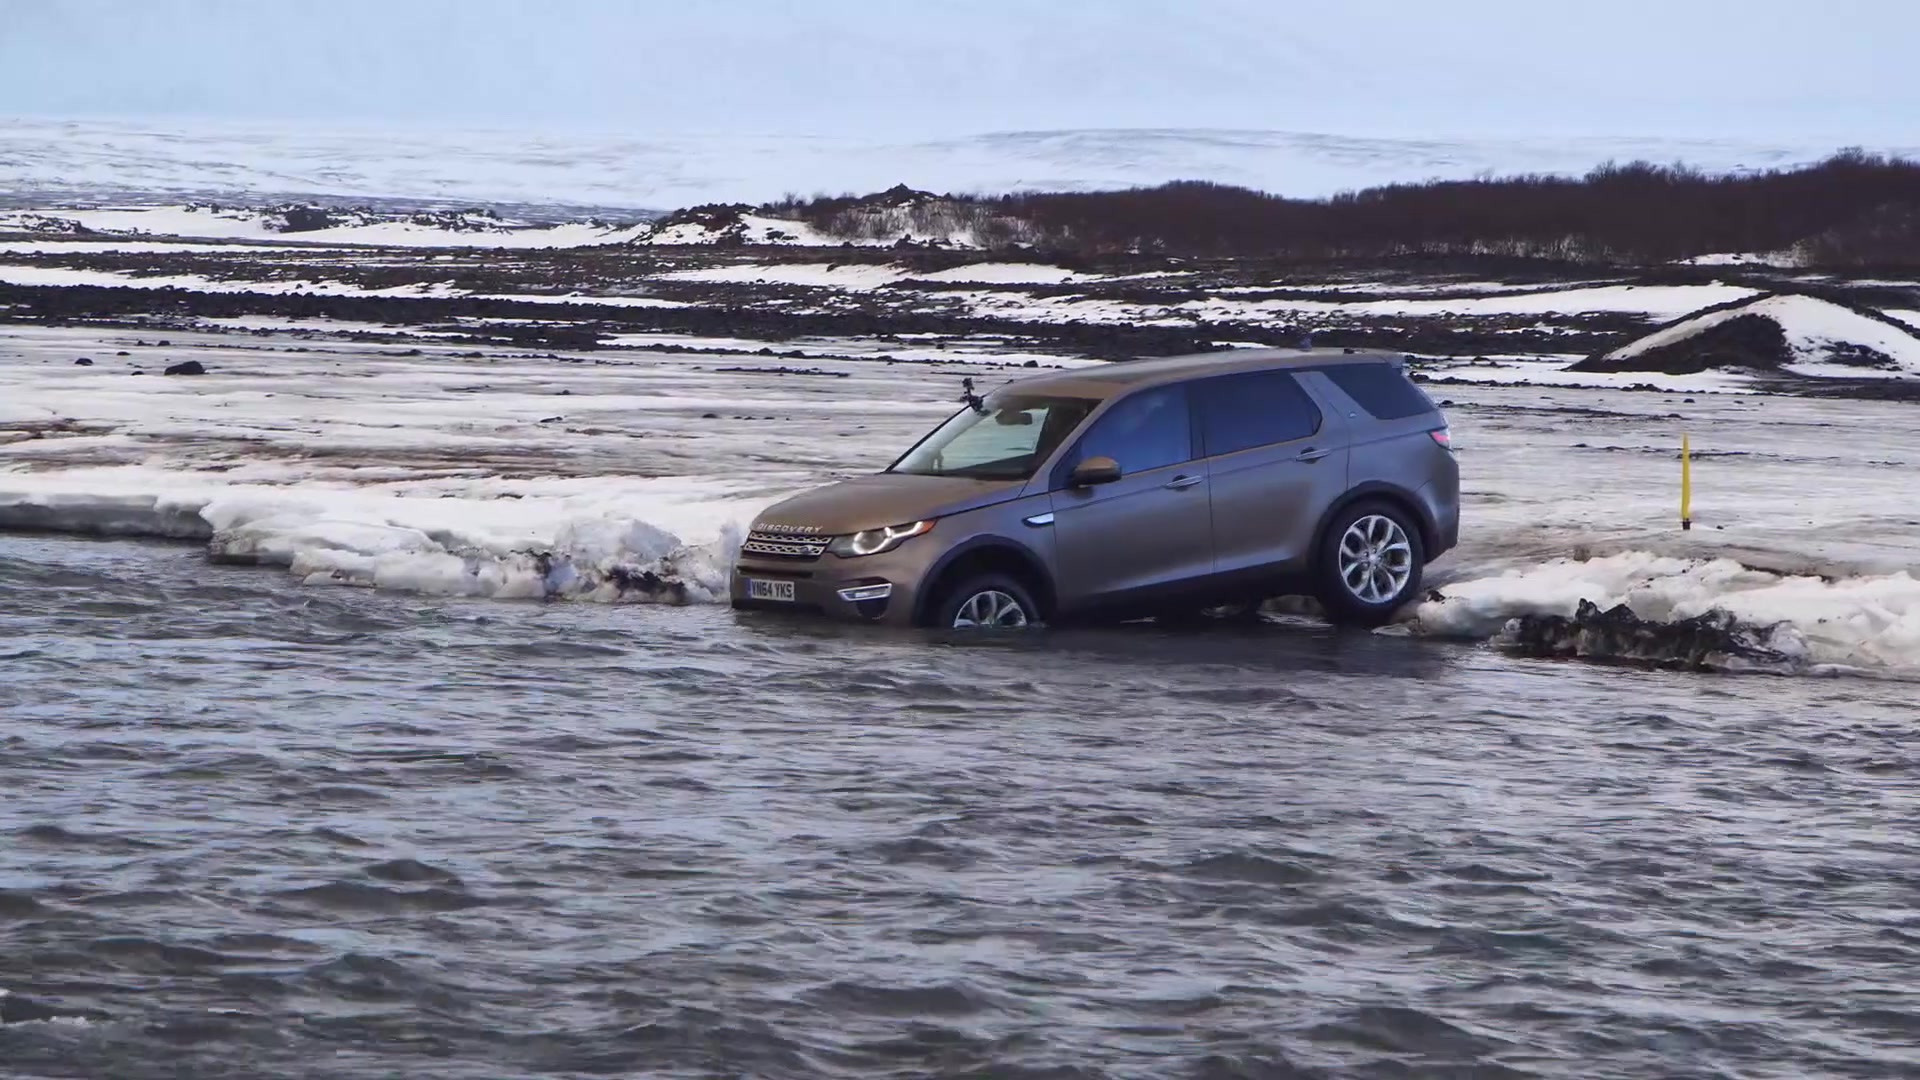 2015 Land Rover Discovery in Iceland | On Location